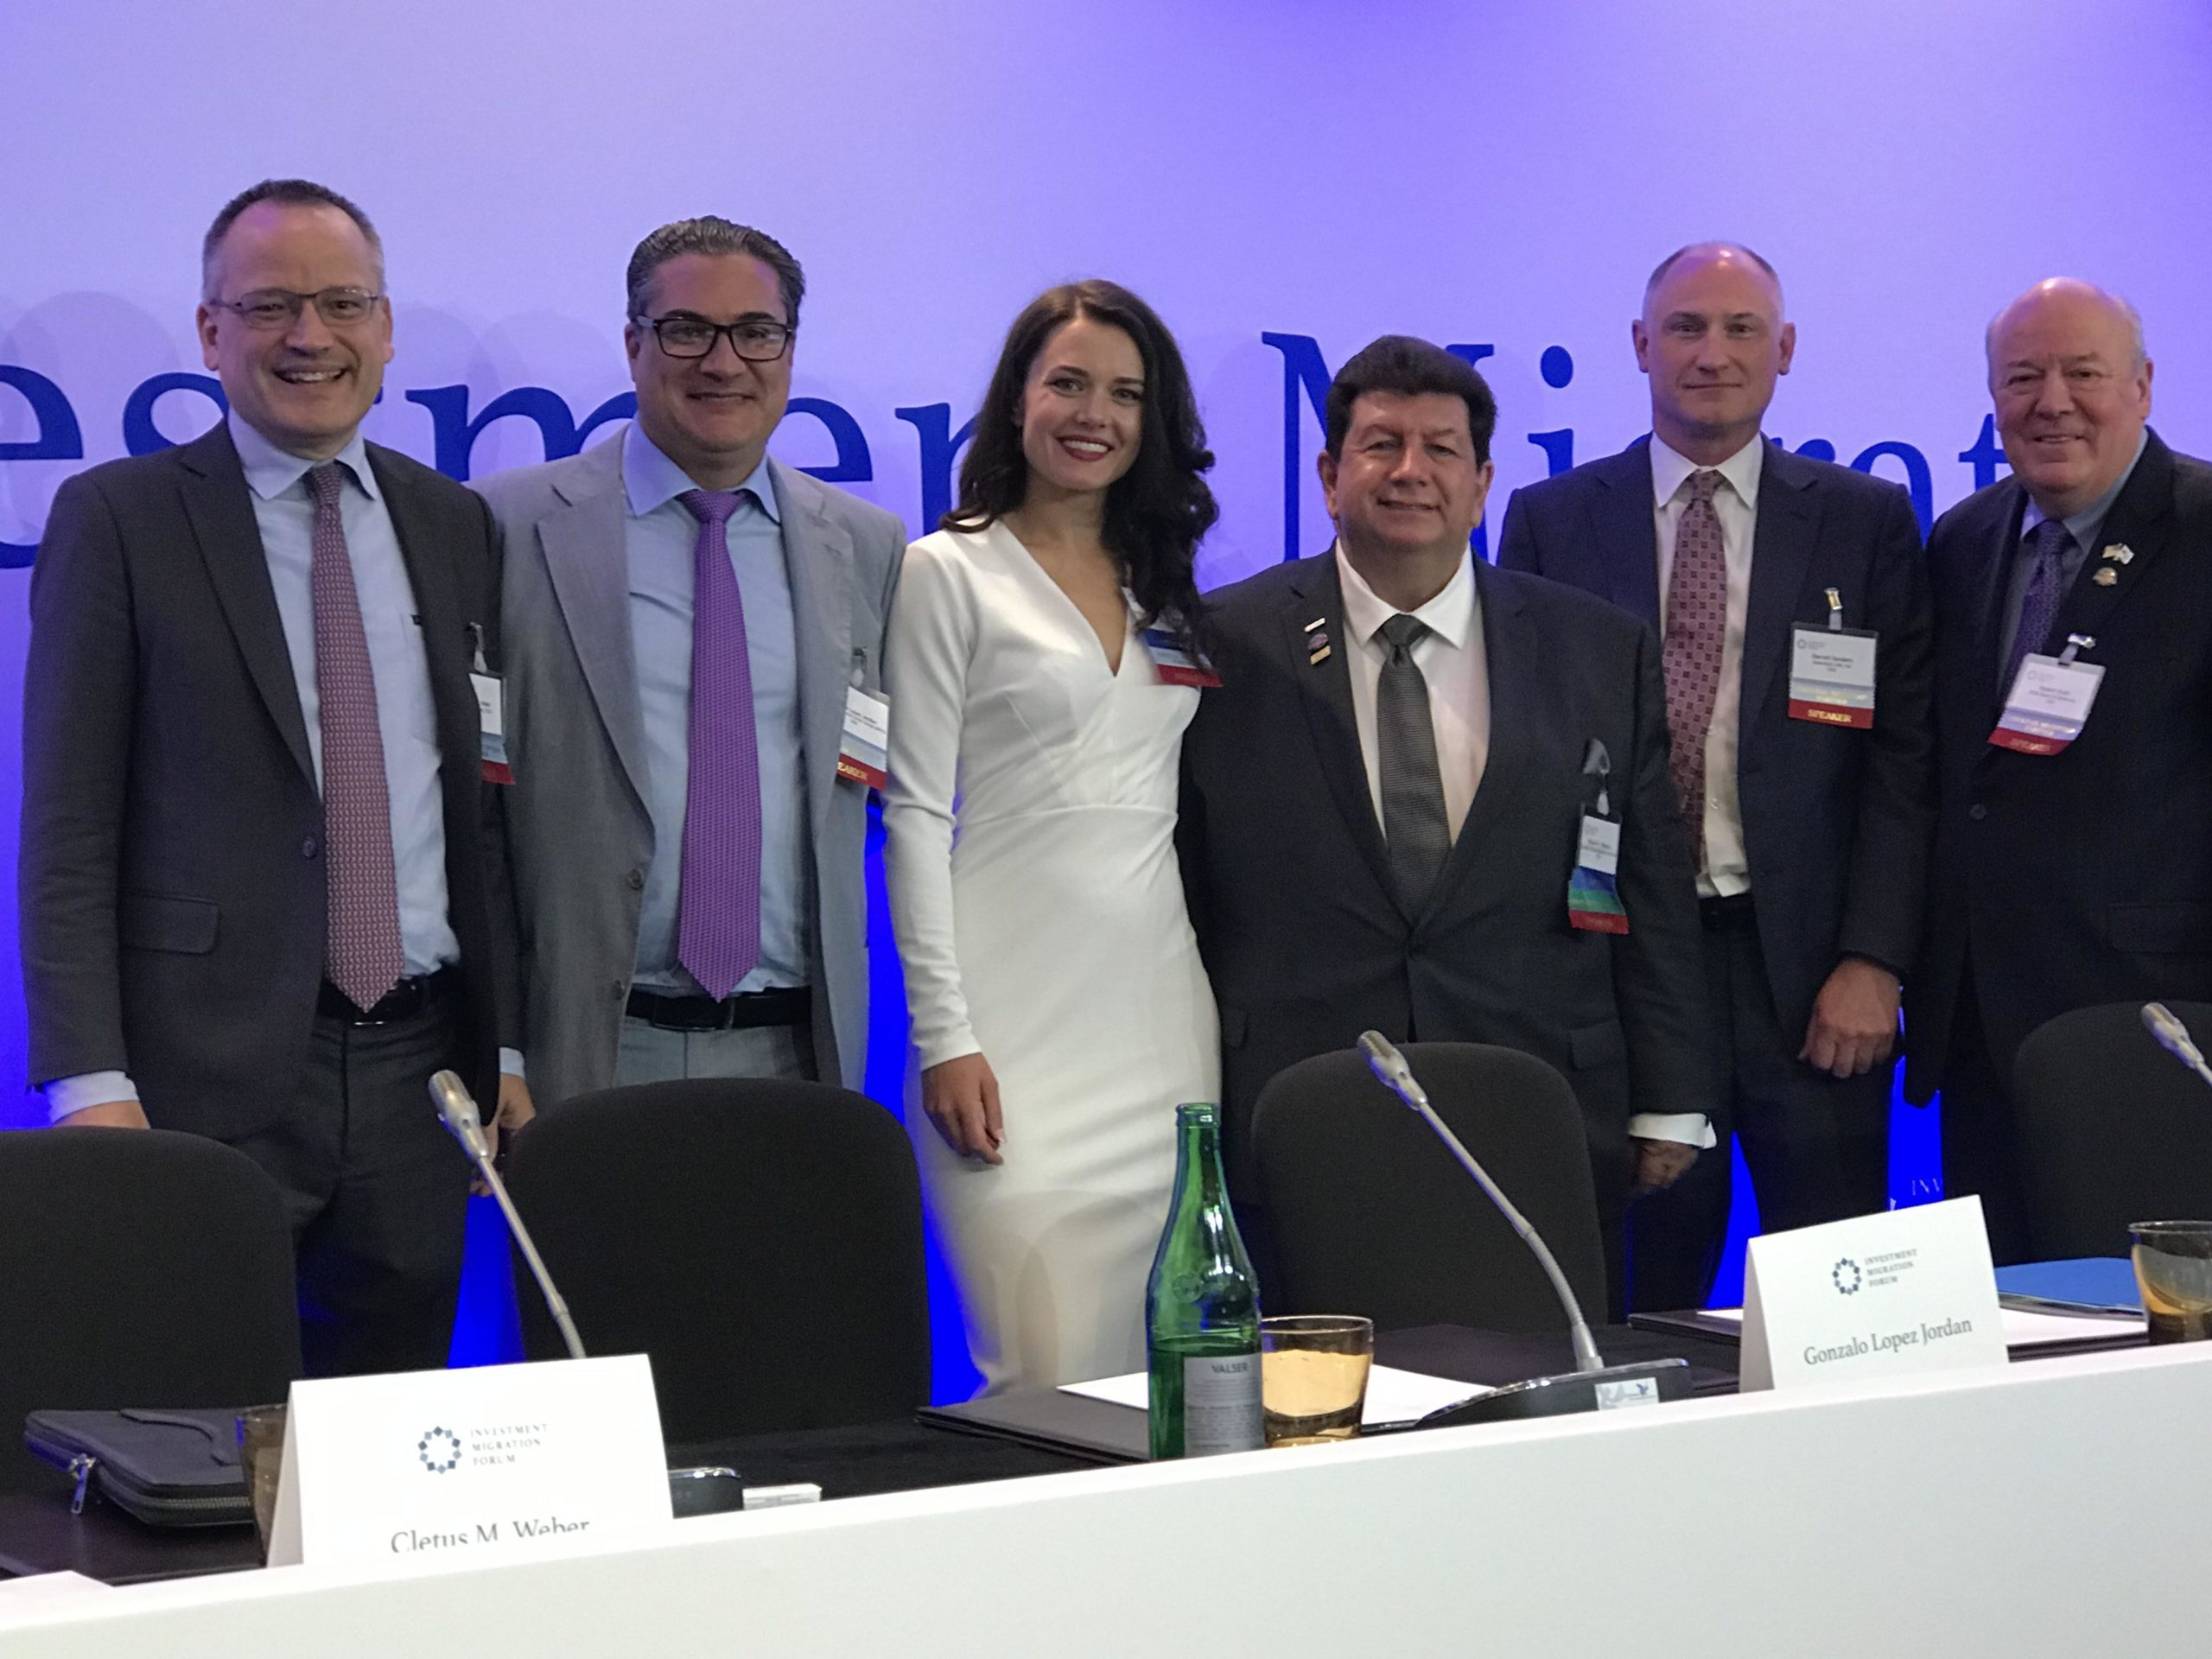 IIUSA Members Conduct EB-5 Discussion at the Investment Migration Forum